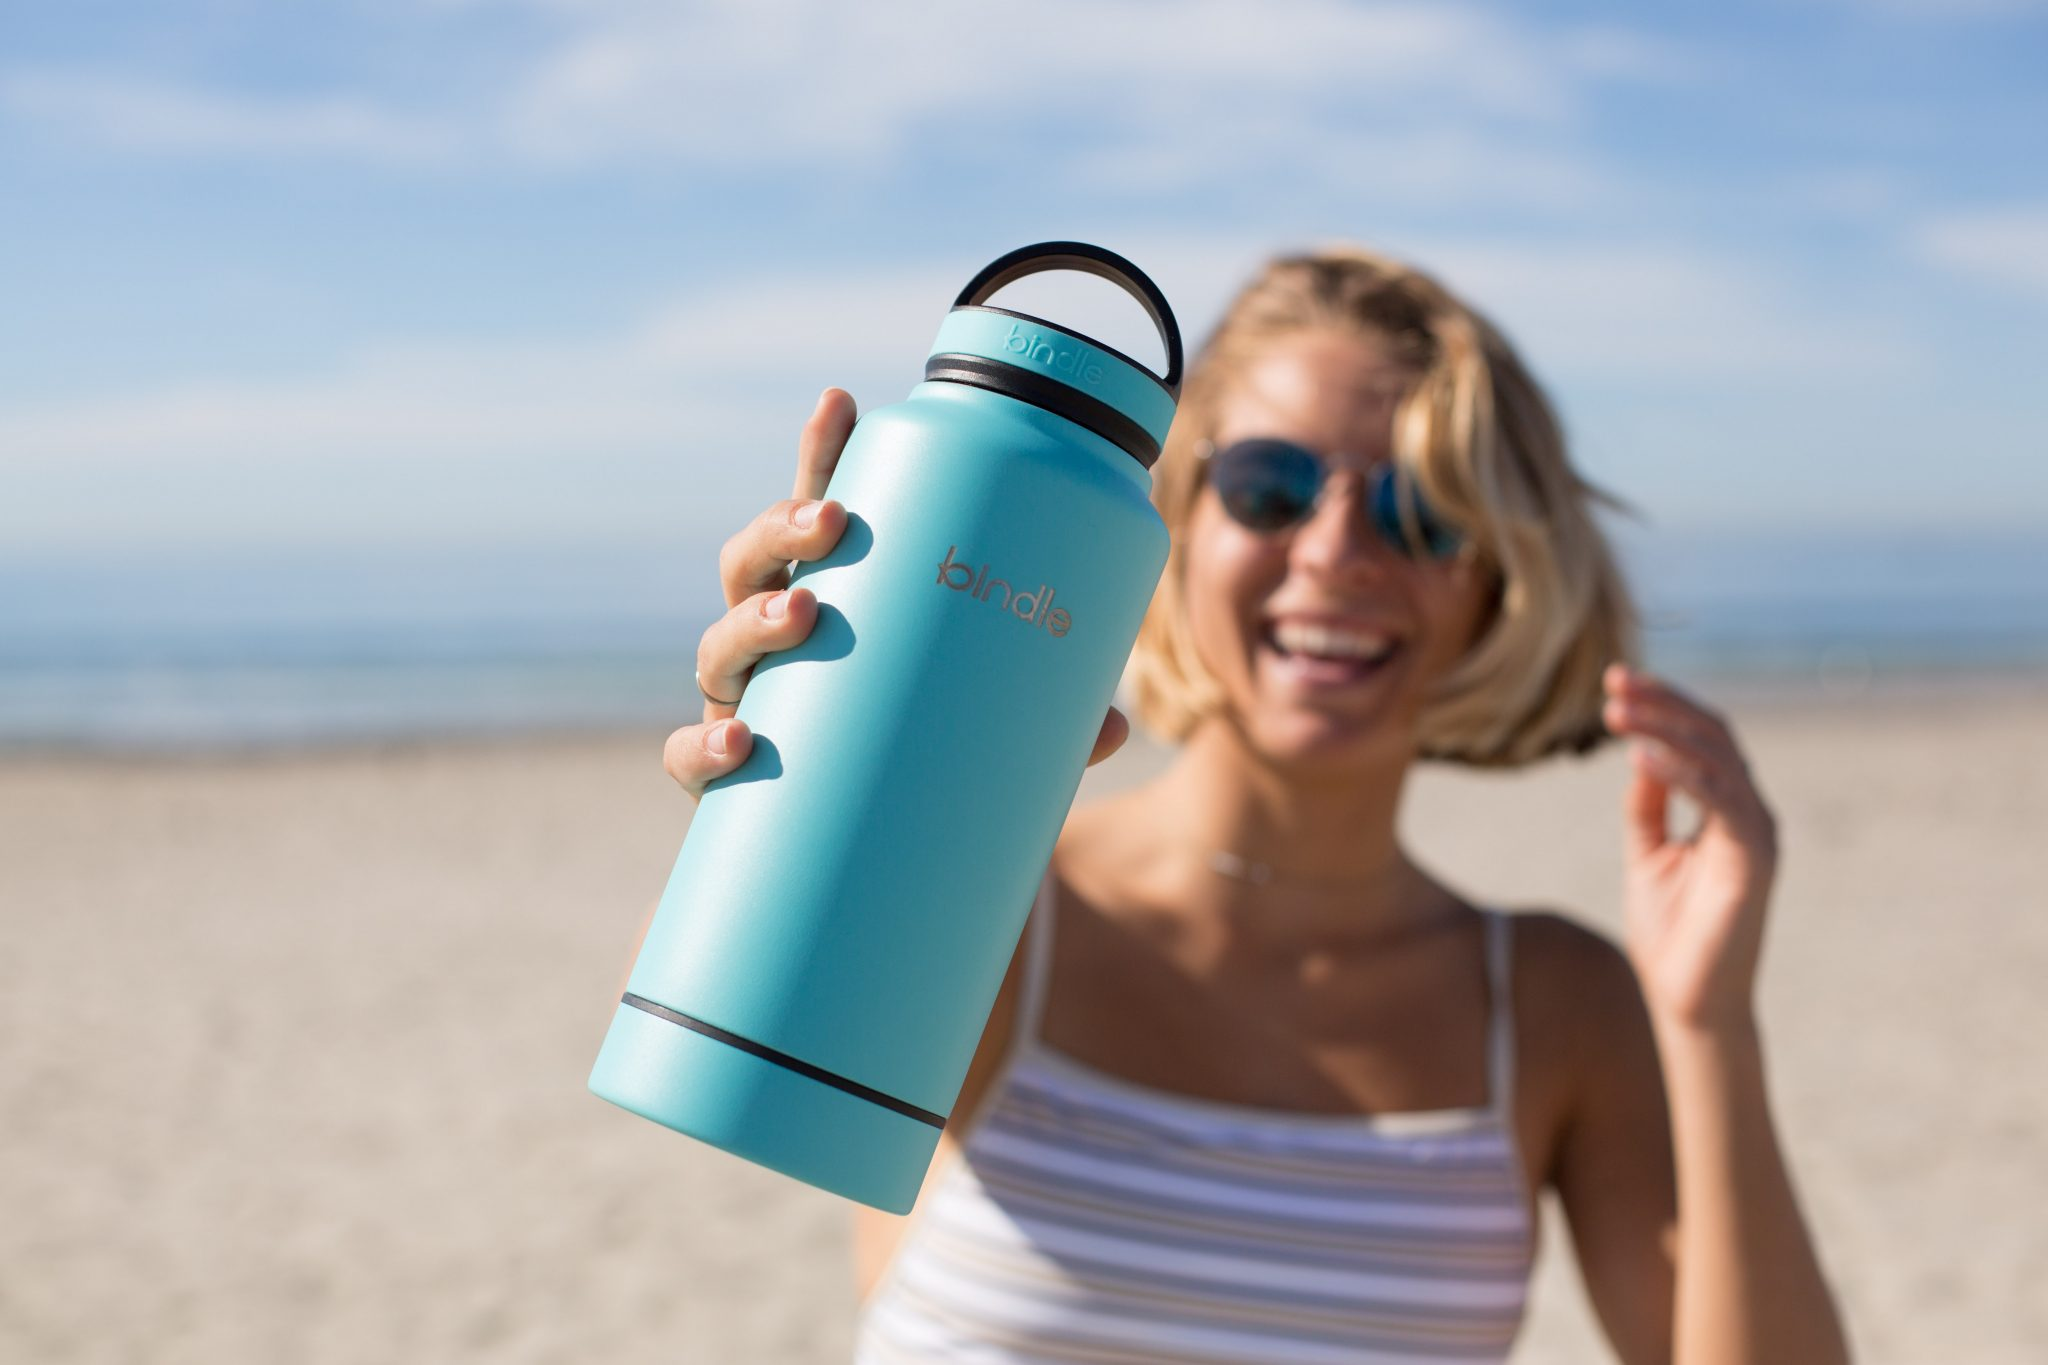 Sustainable event marketing includes reusable swag